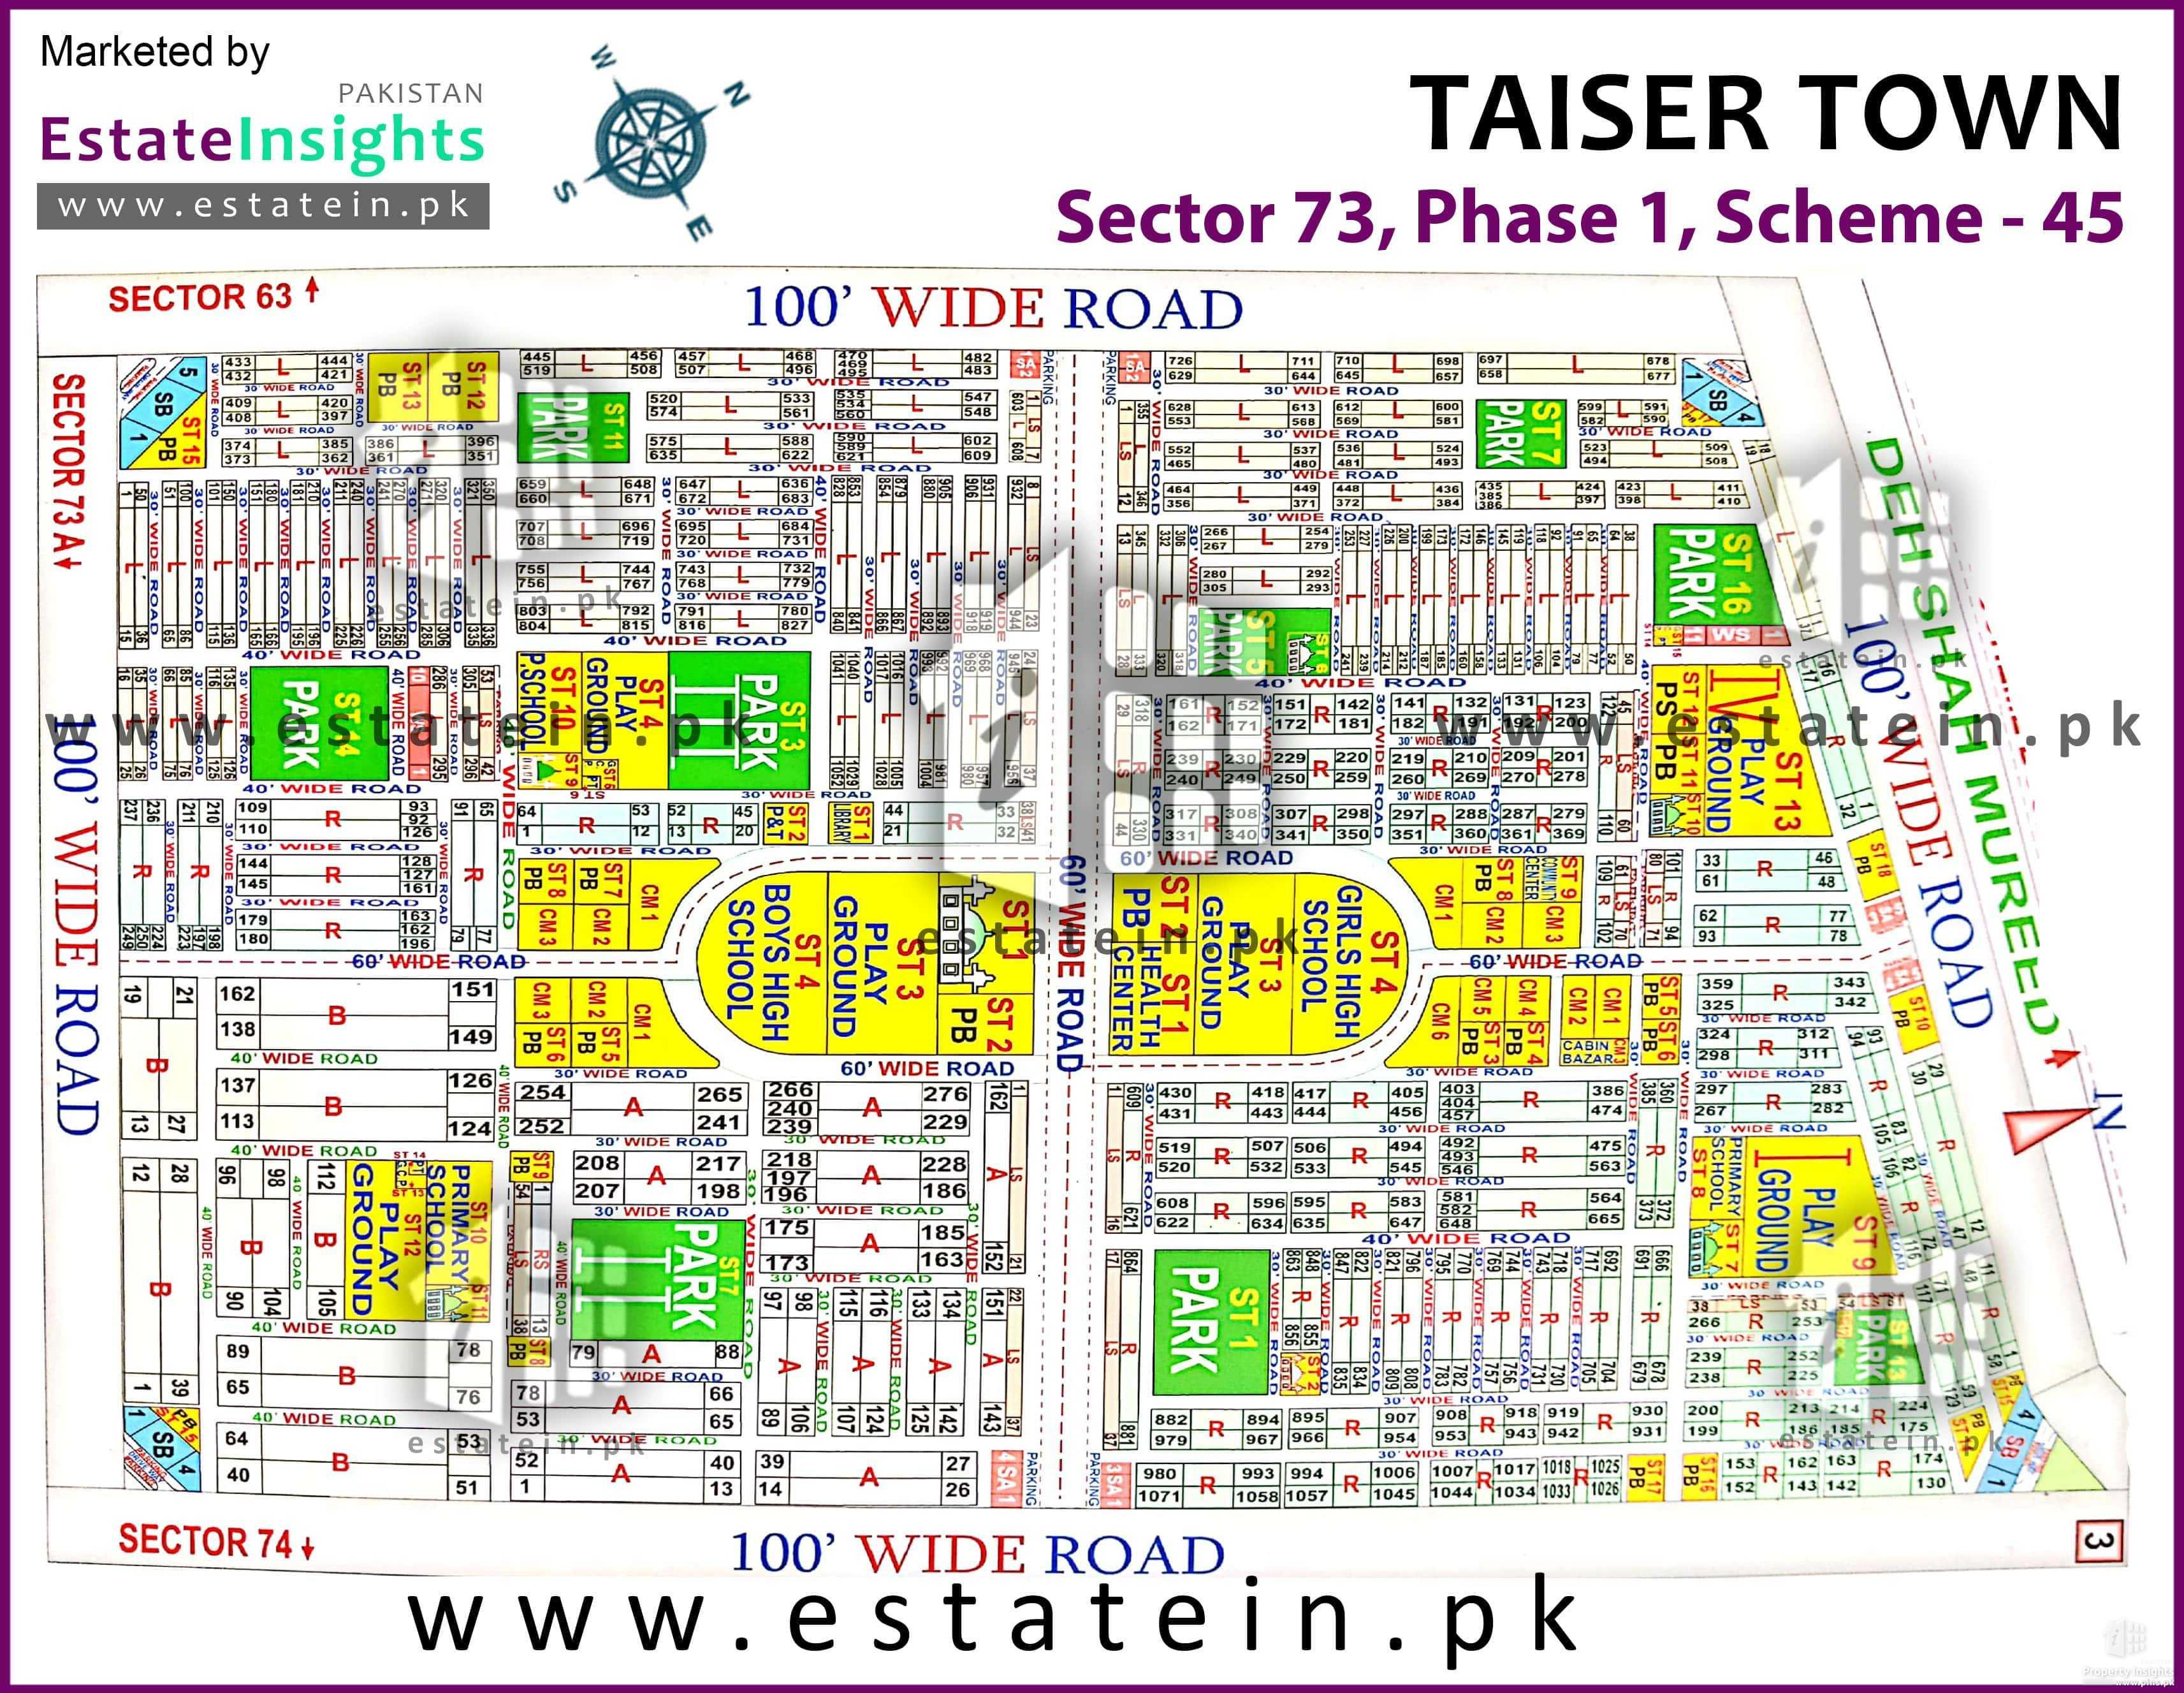 120 Sq. Yards Plot for Sale Sector 73 Taiser Town